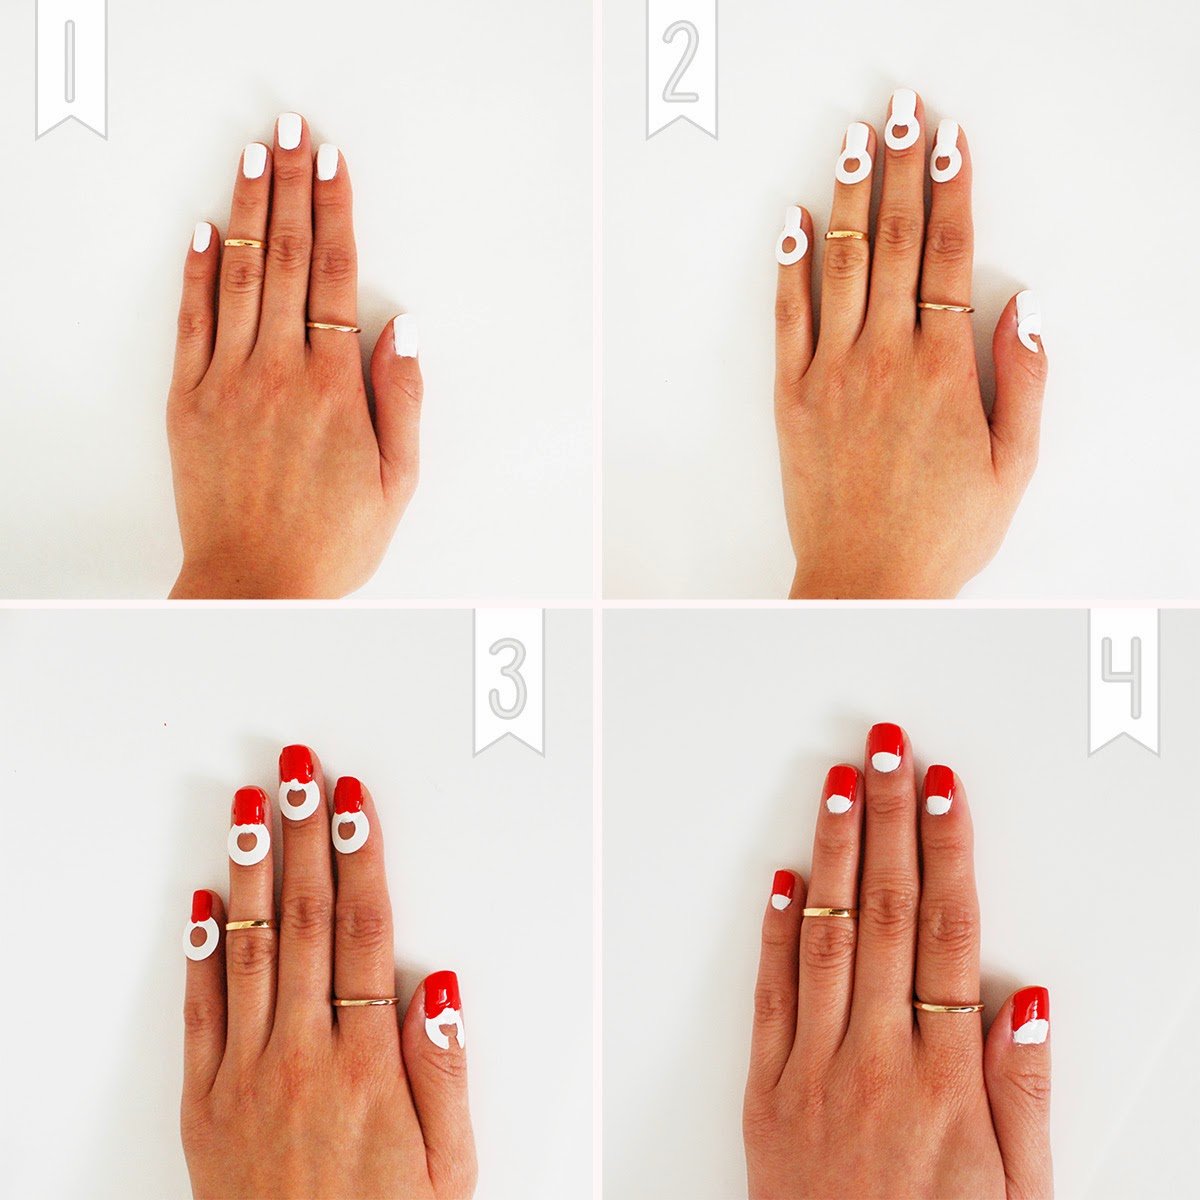 Nail Art Ideas » Nail Art With Reinforcement Labels - Pictures of ...